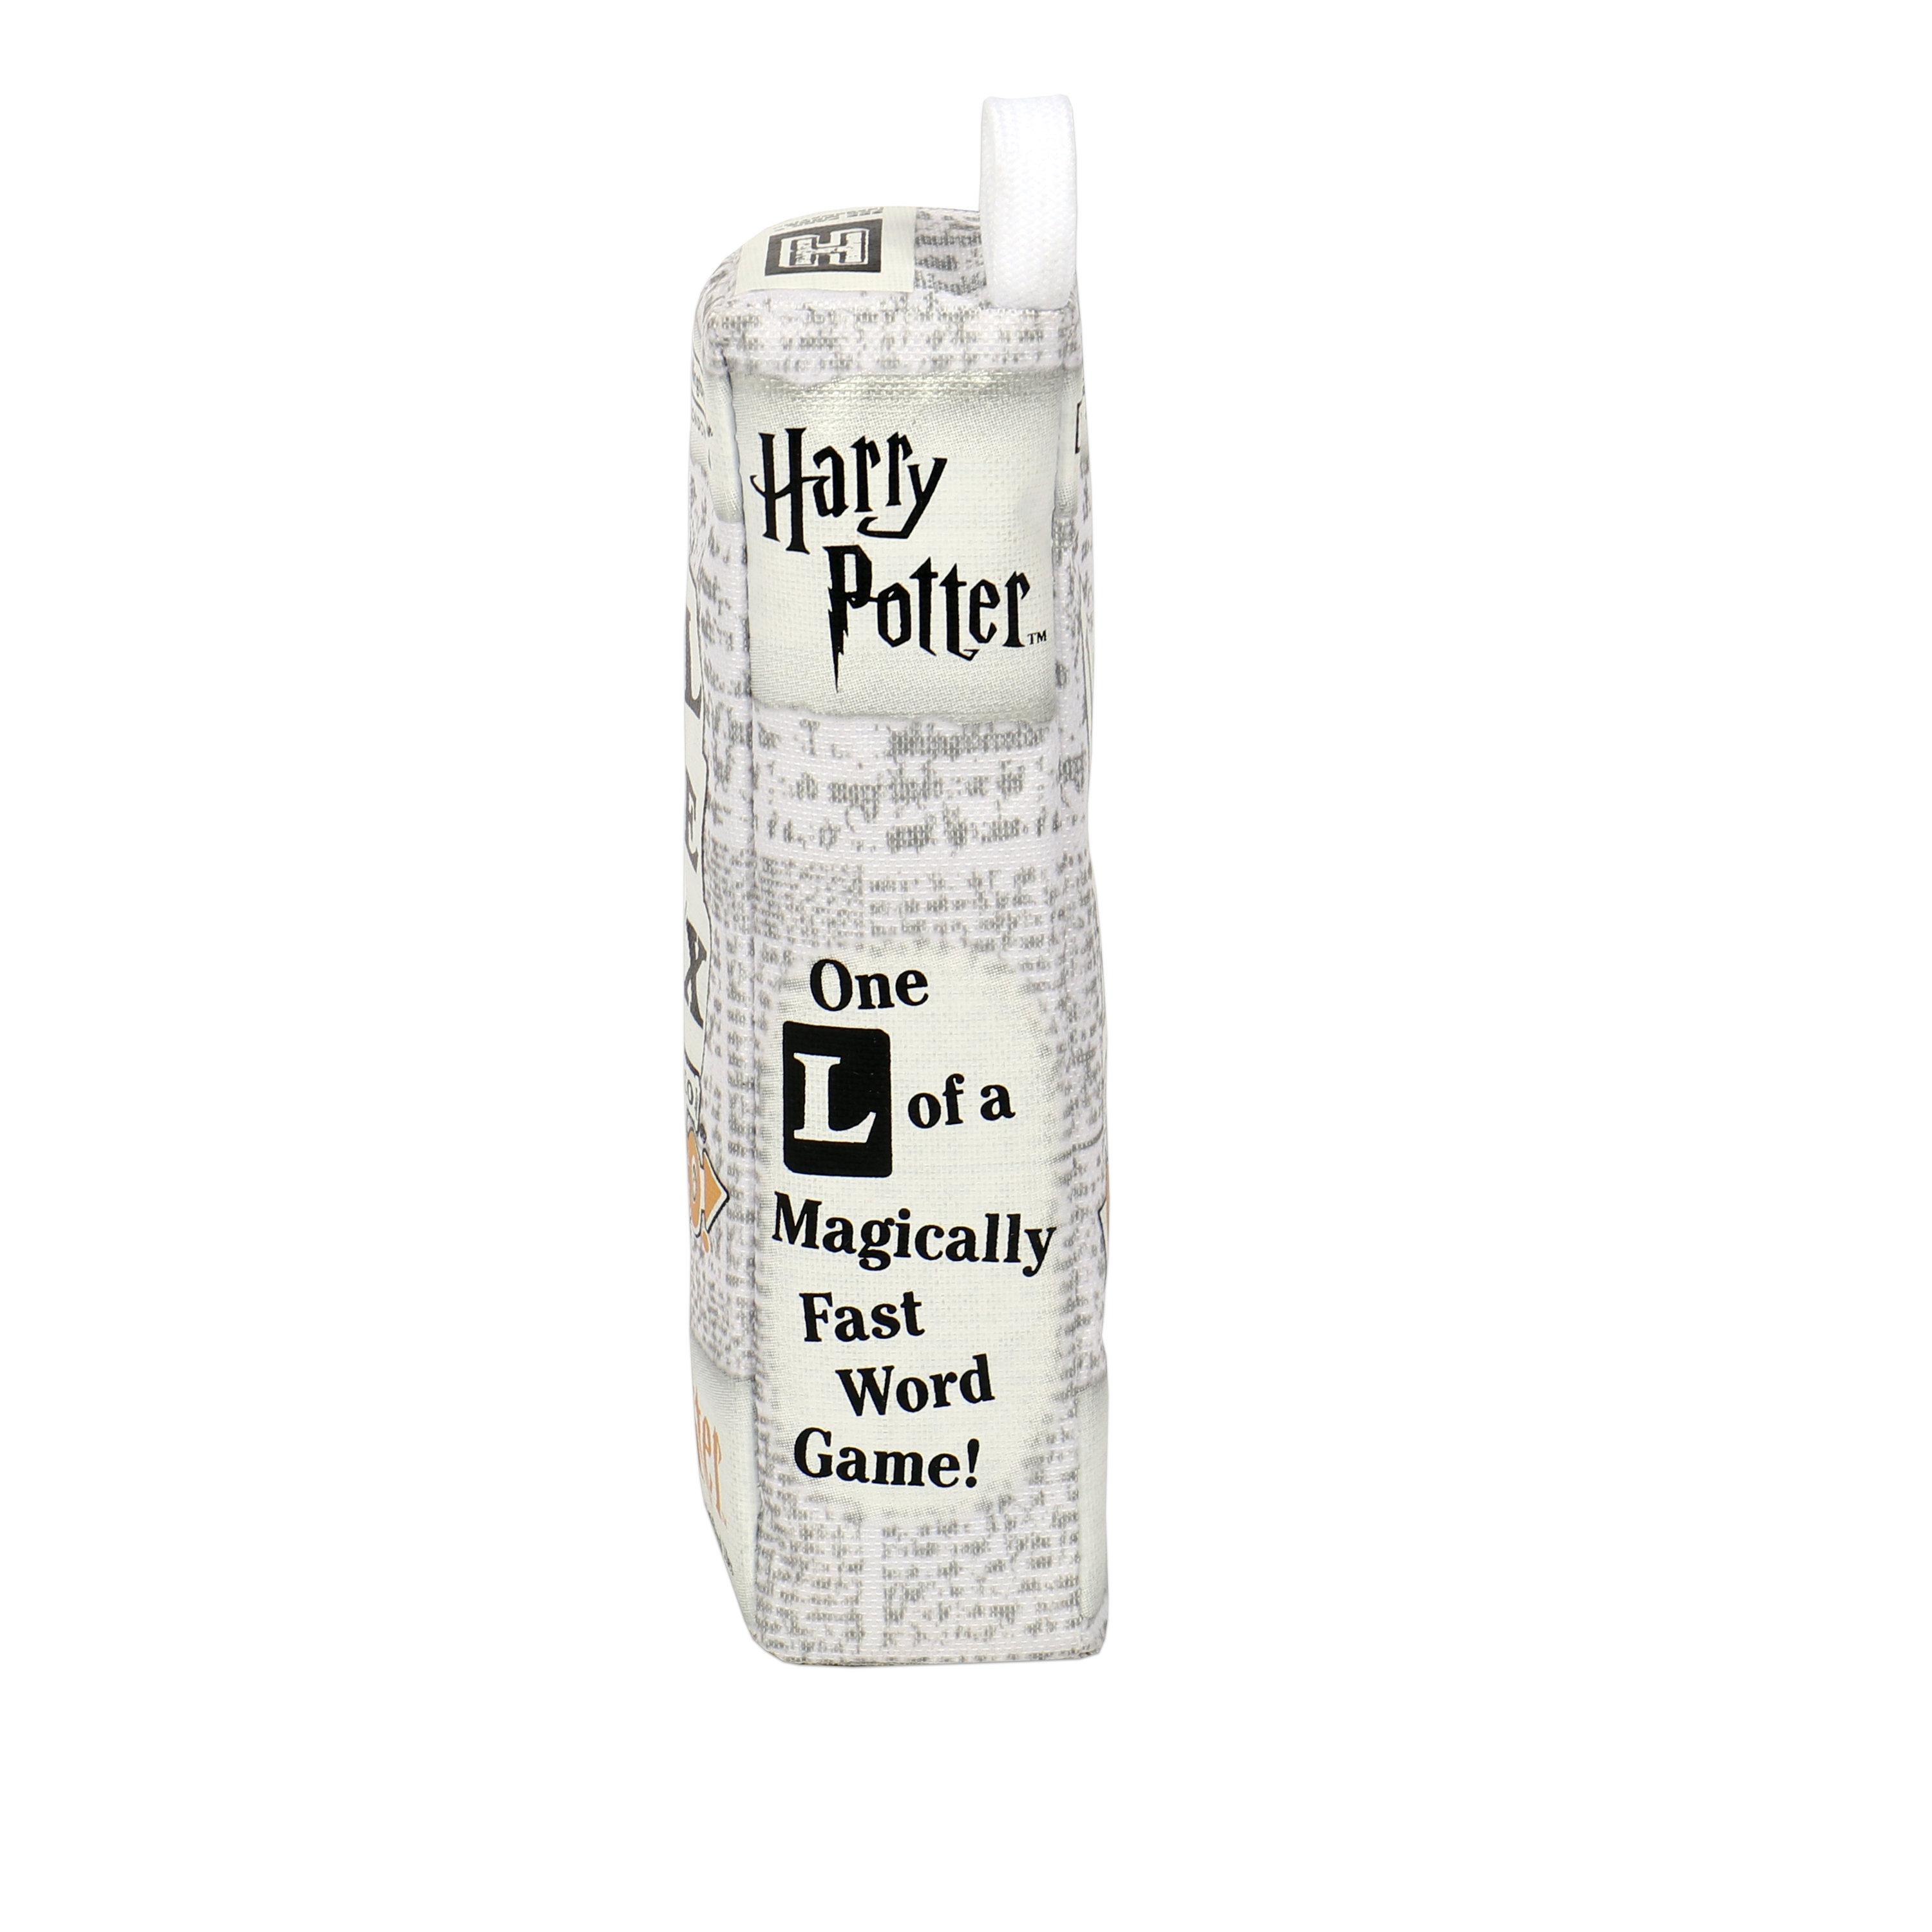 Harry Potter Lexicon GO! back of pouch